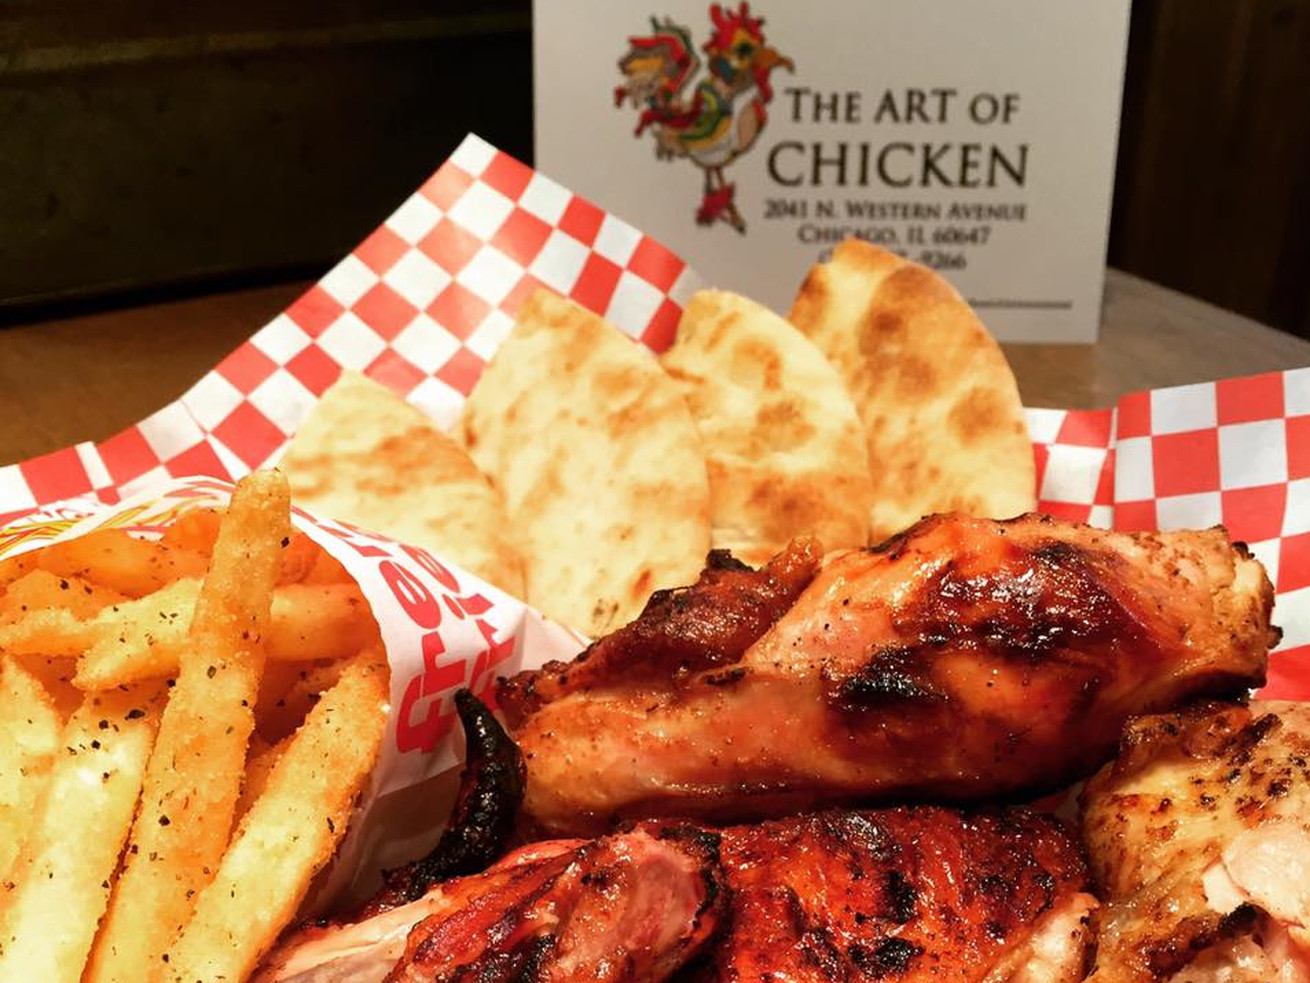 The Art of Chicken is on the comeback trail.